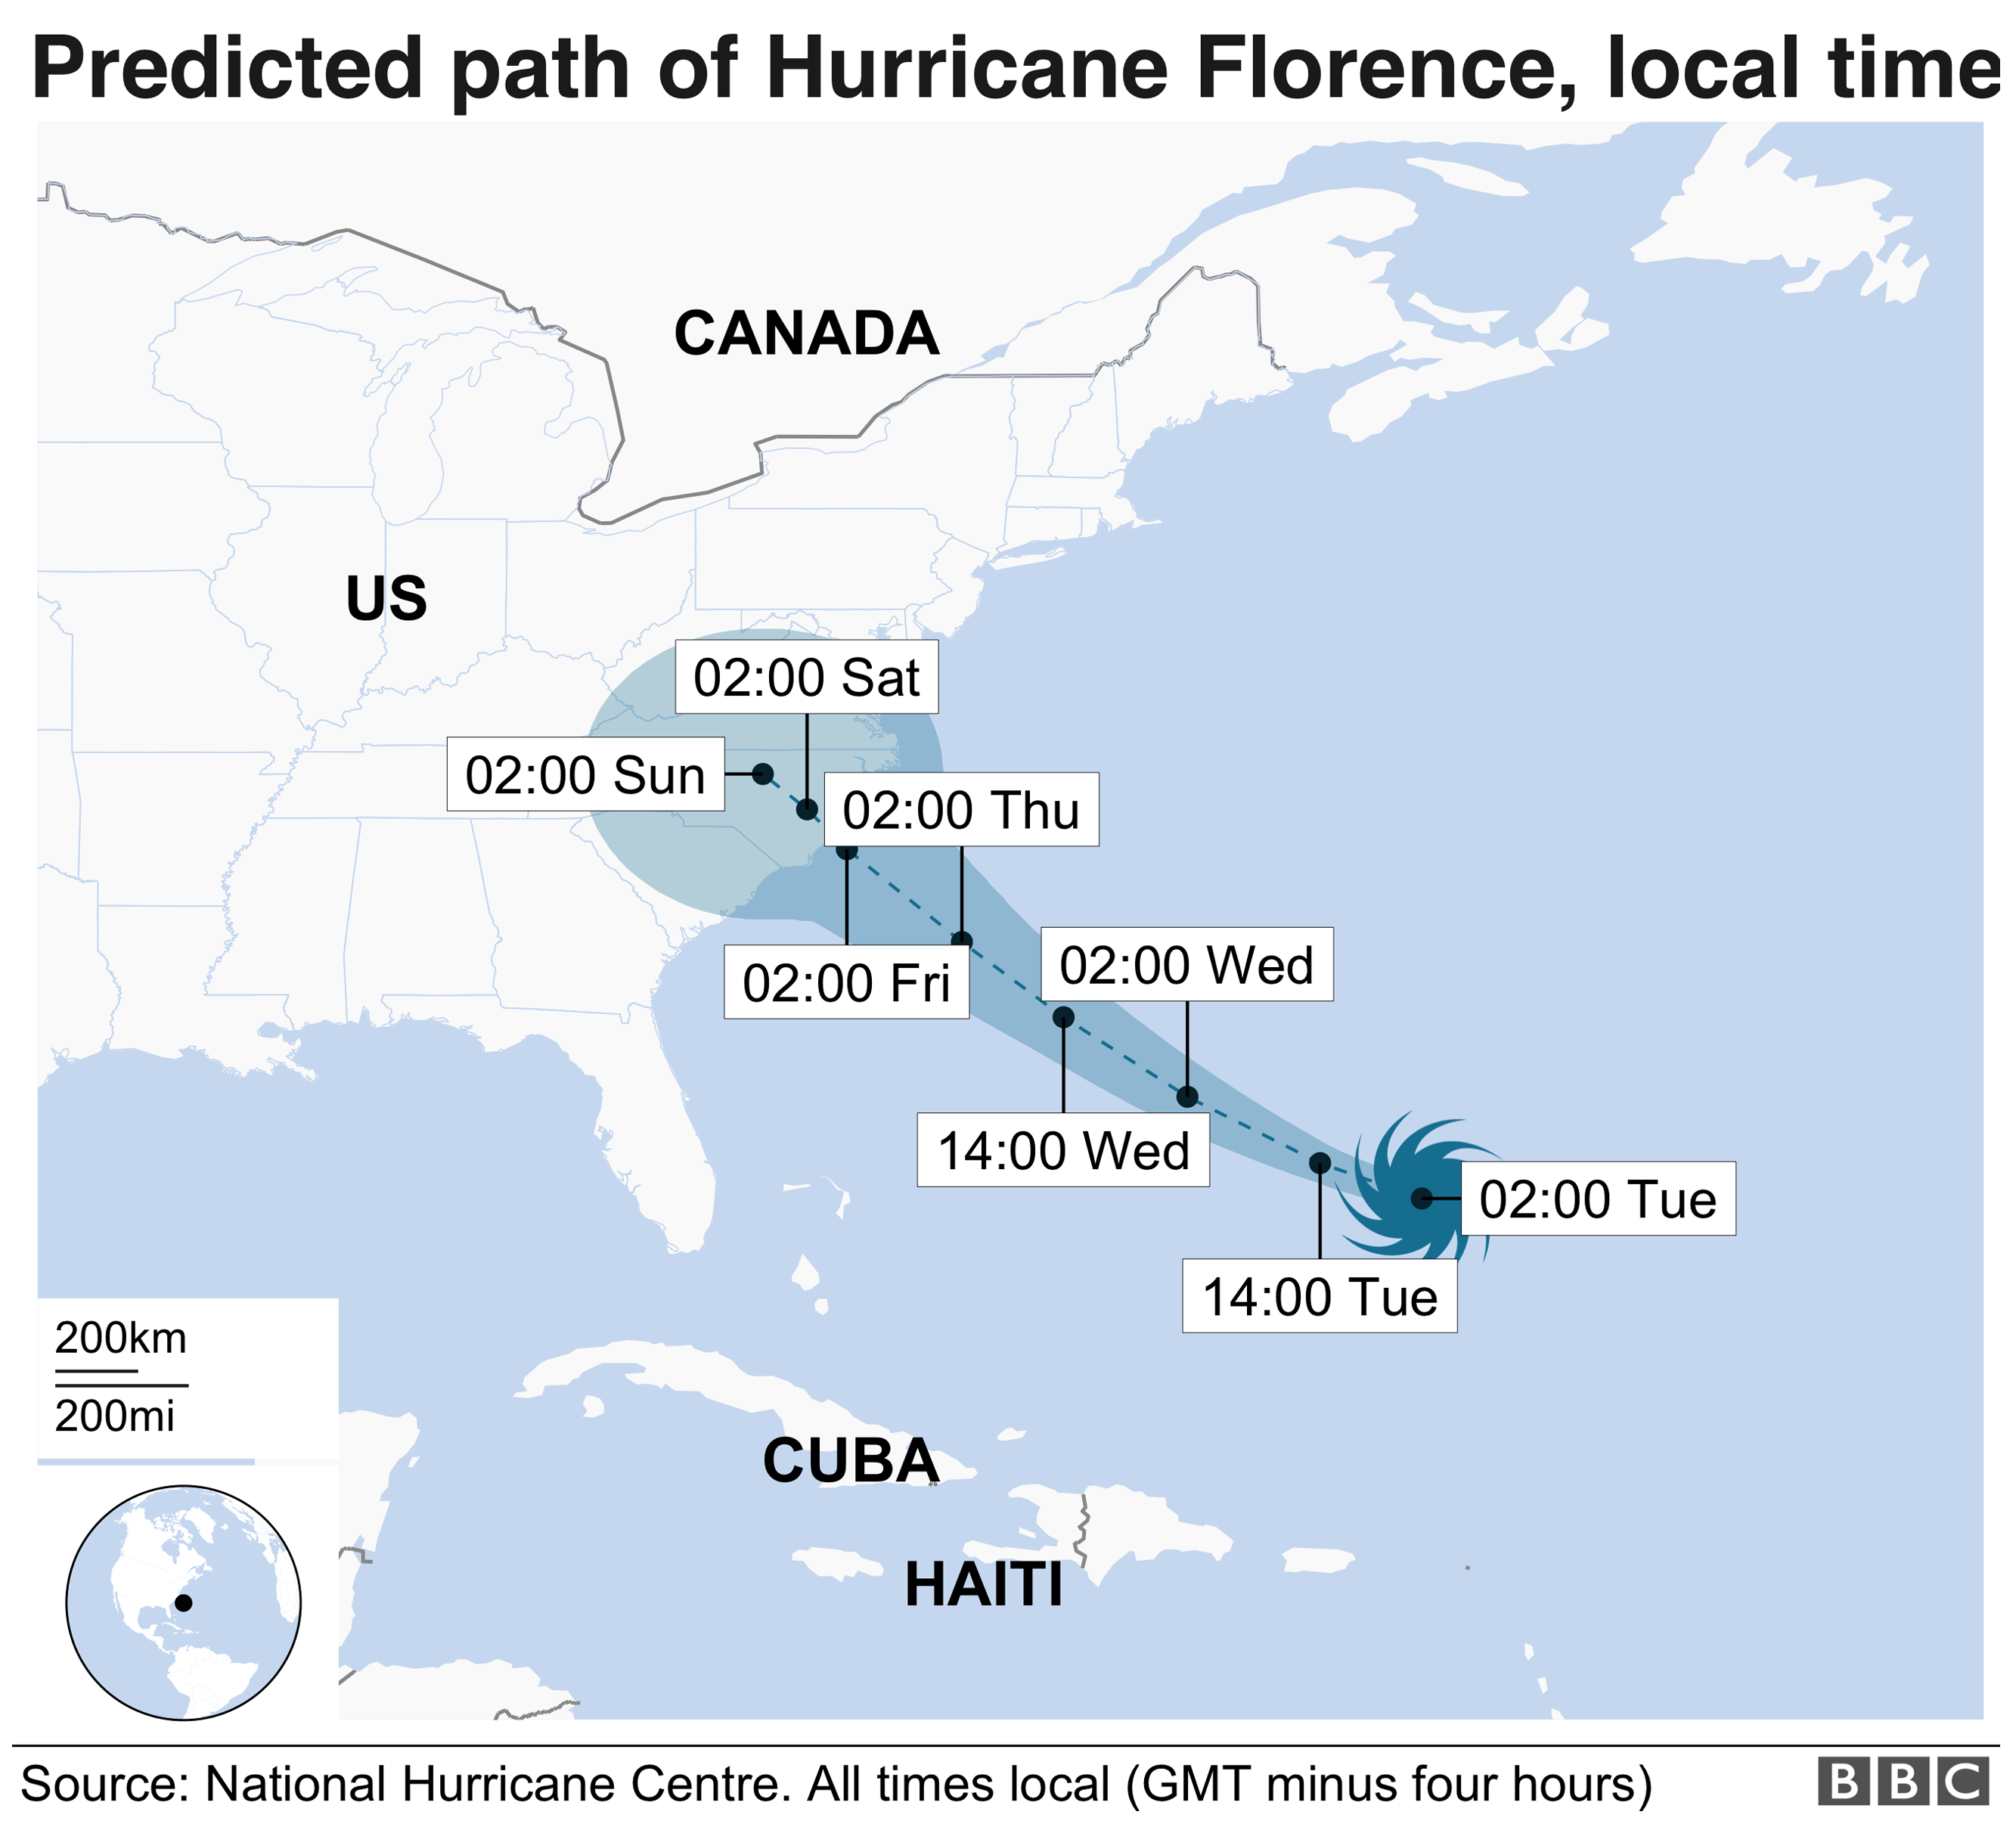 Map showing predicted path of Hurricane Florence